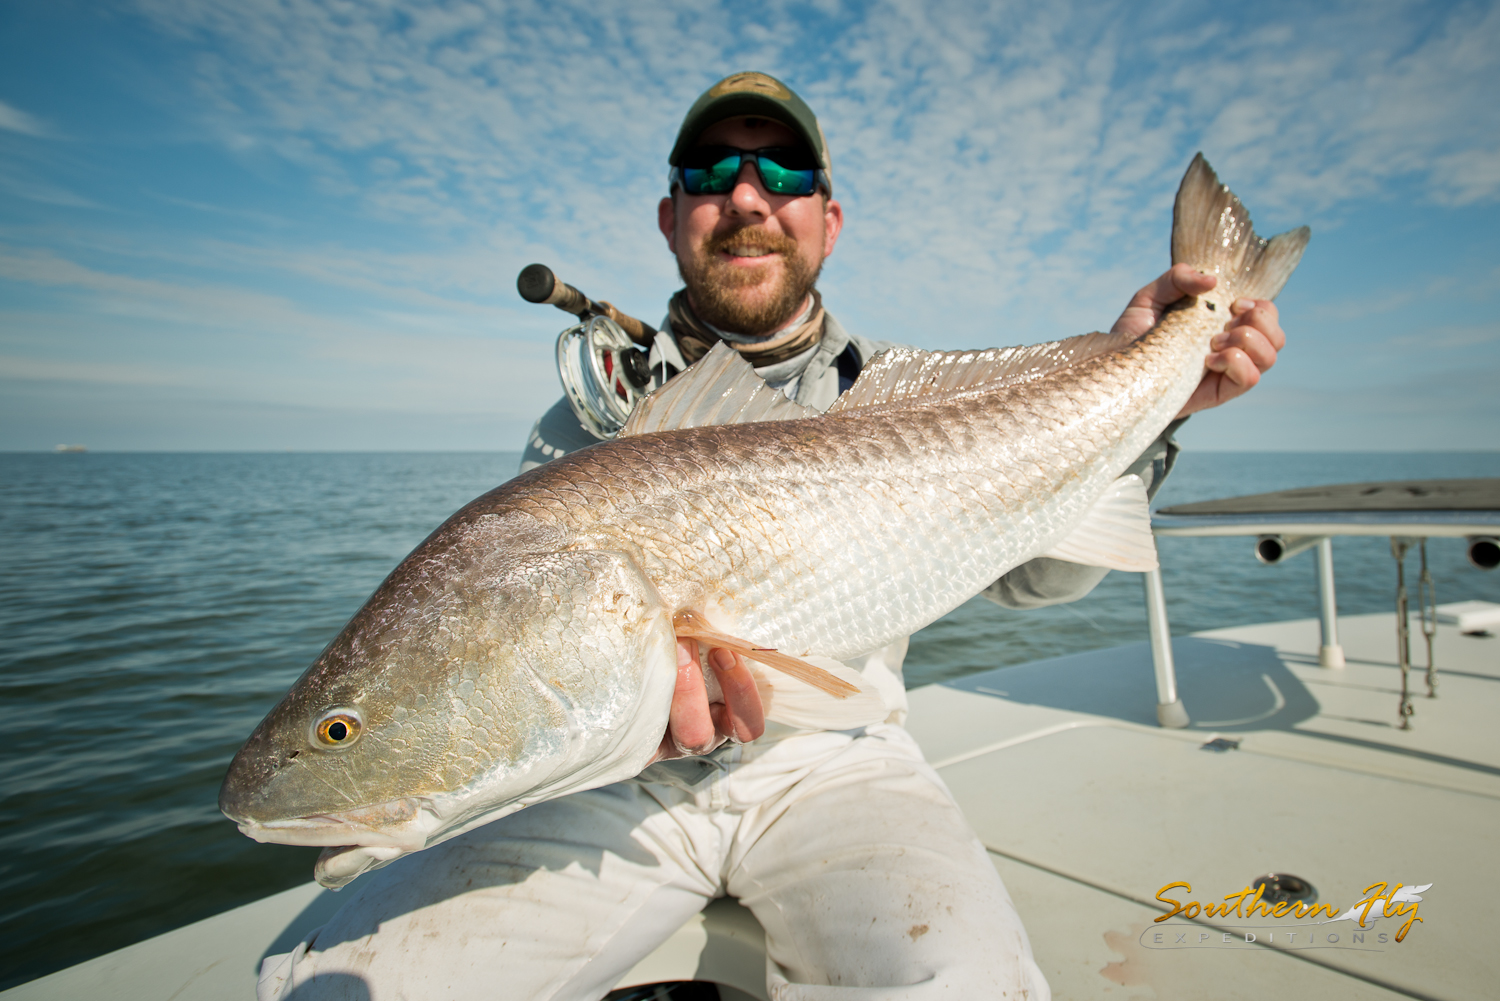 fly fishing new orleans guides by Southern Fly Expeditions redfish guide